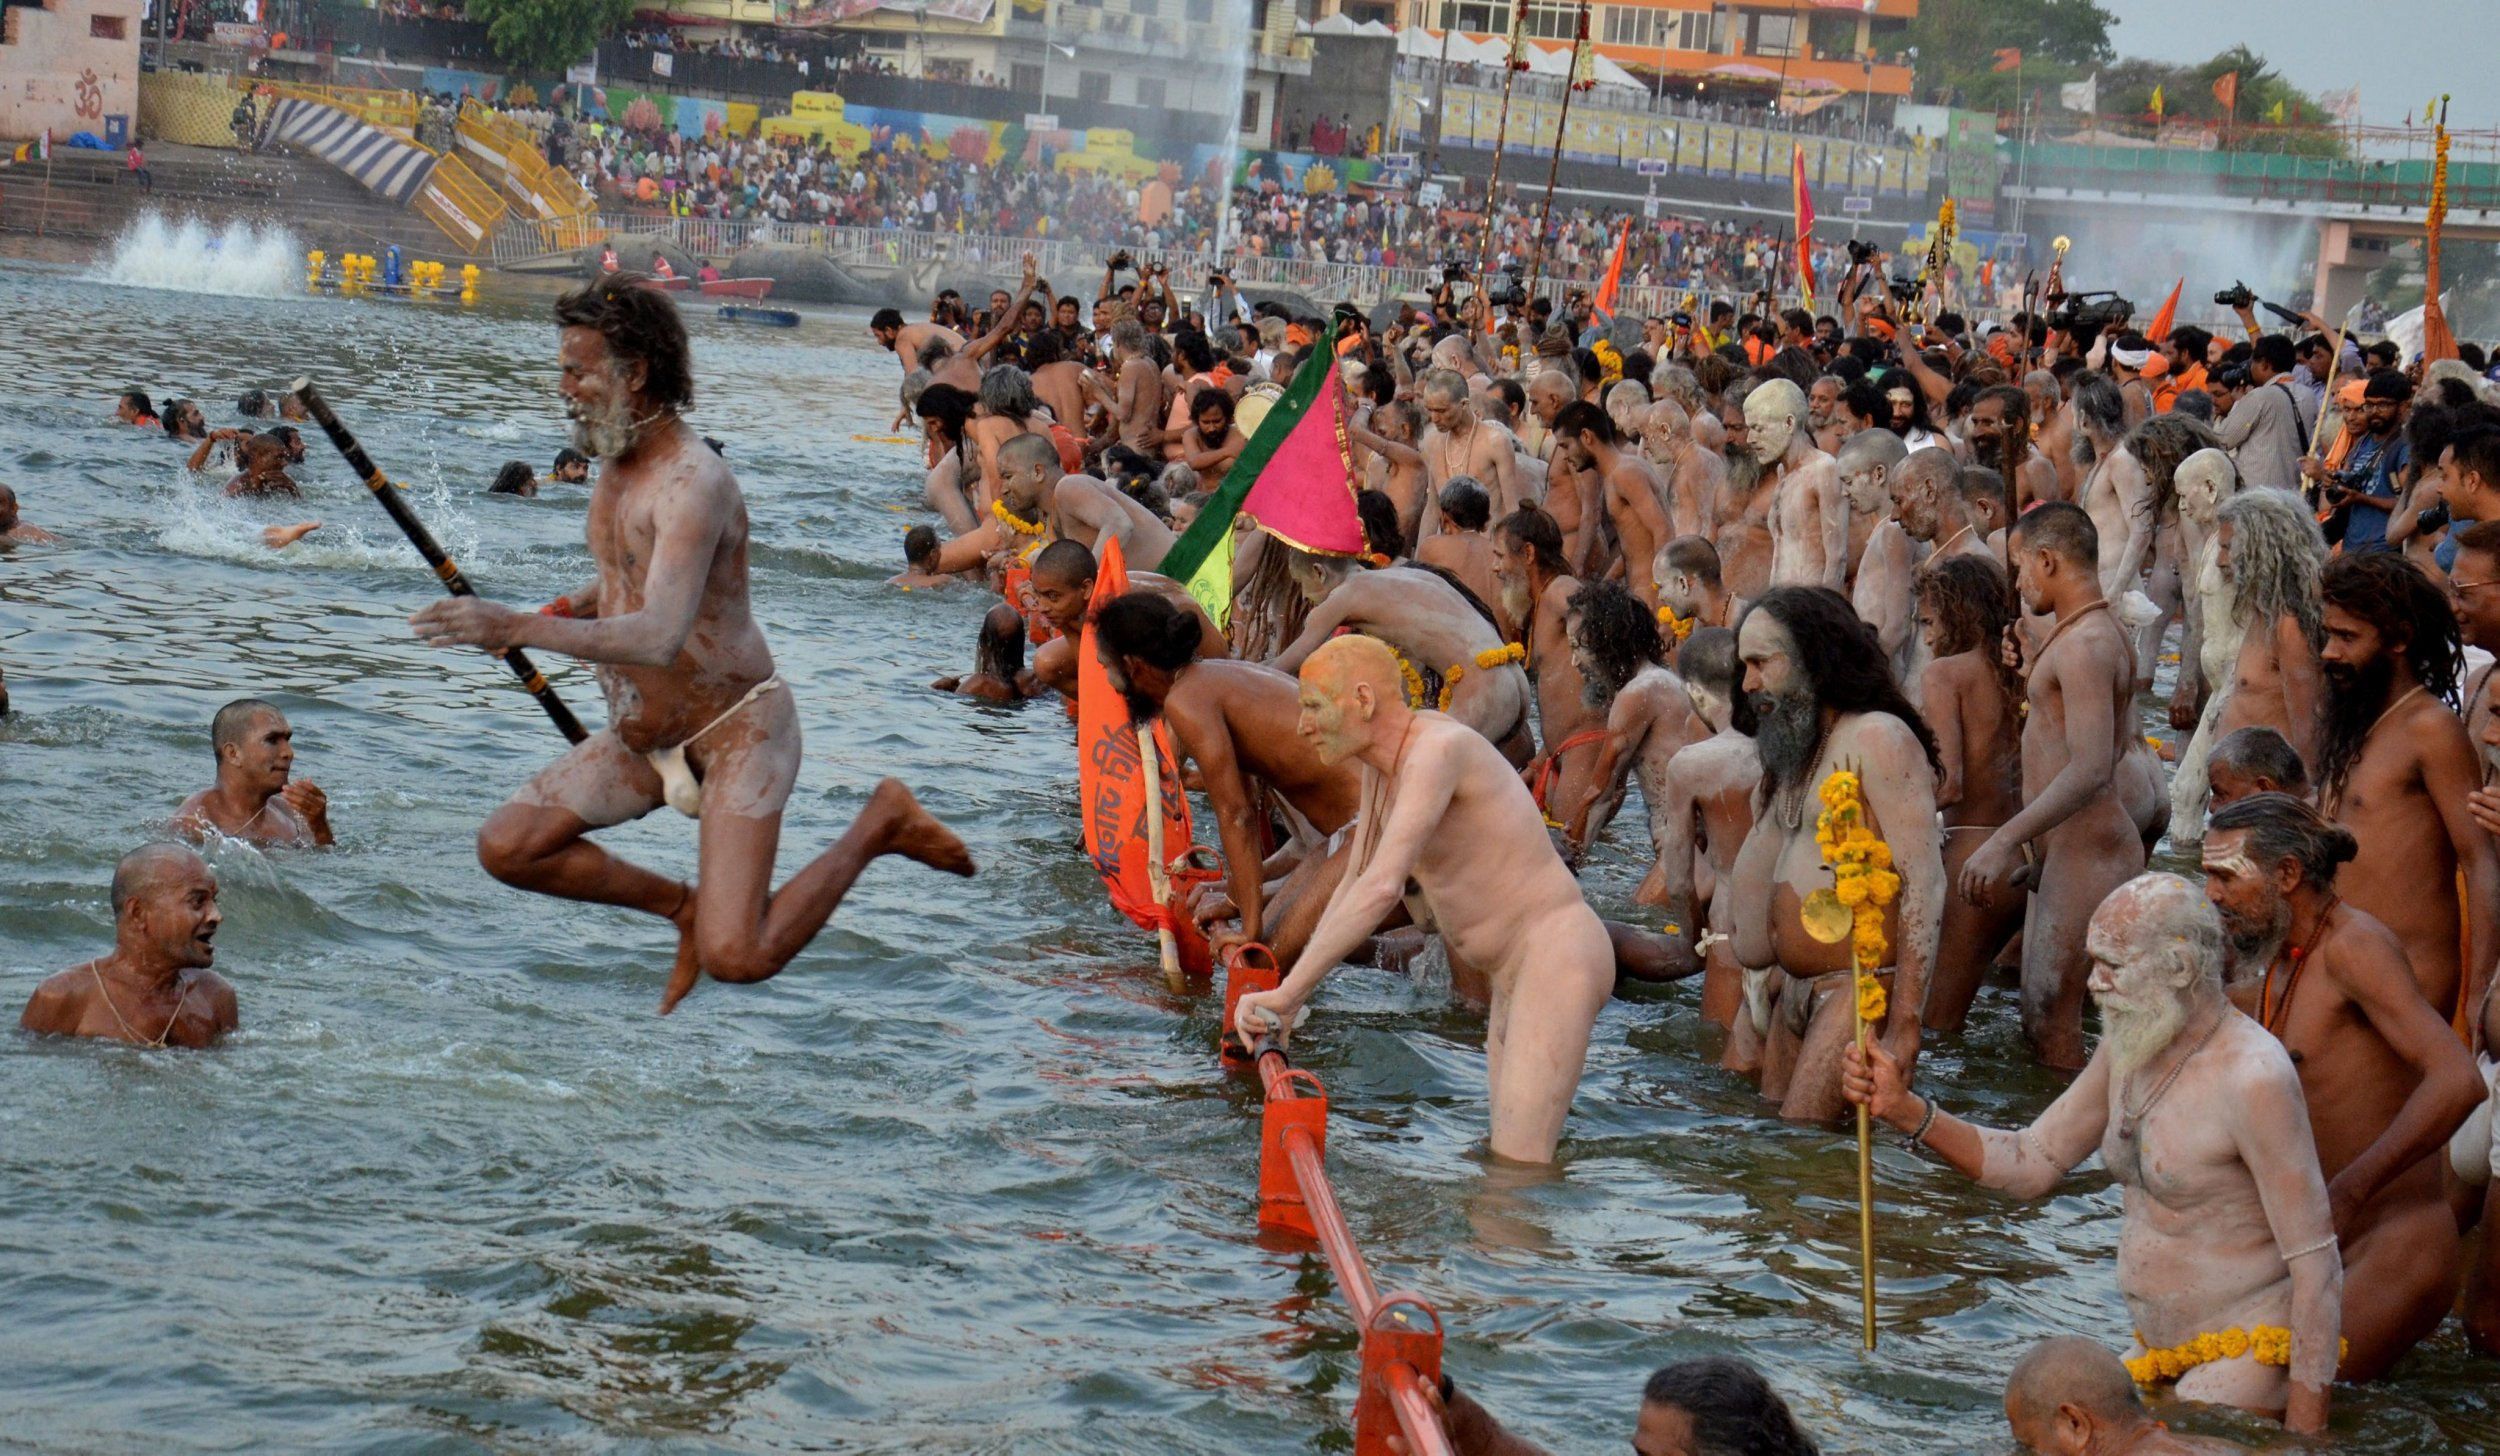 epaselect epa05320617 Naga Sadhu or 'Naked Holy Men' bathe in the Shipra river as they take part in the Simhastha Kumbh Mela festival in Ujjain, some 180 km from Bhopal, India, 21 May 2016. Kumbh Mela is a mass Hindu pilgrimage which occurs every twelve years, and there are several auxiliary events, including the Simhastha Kumbh Mela, which held more frequently and rotate among four locations. According to traditions, the event offers Hindu devotees the chance to wash away their sins with a ritual bath in the holy waters of one of the holy river that the festivals take place near. The Simhastha Kumbh Mela is being held from 22 April to 21 May.ø EPA/SANJEEV GUPTA